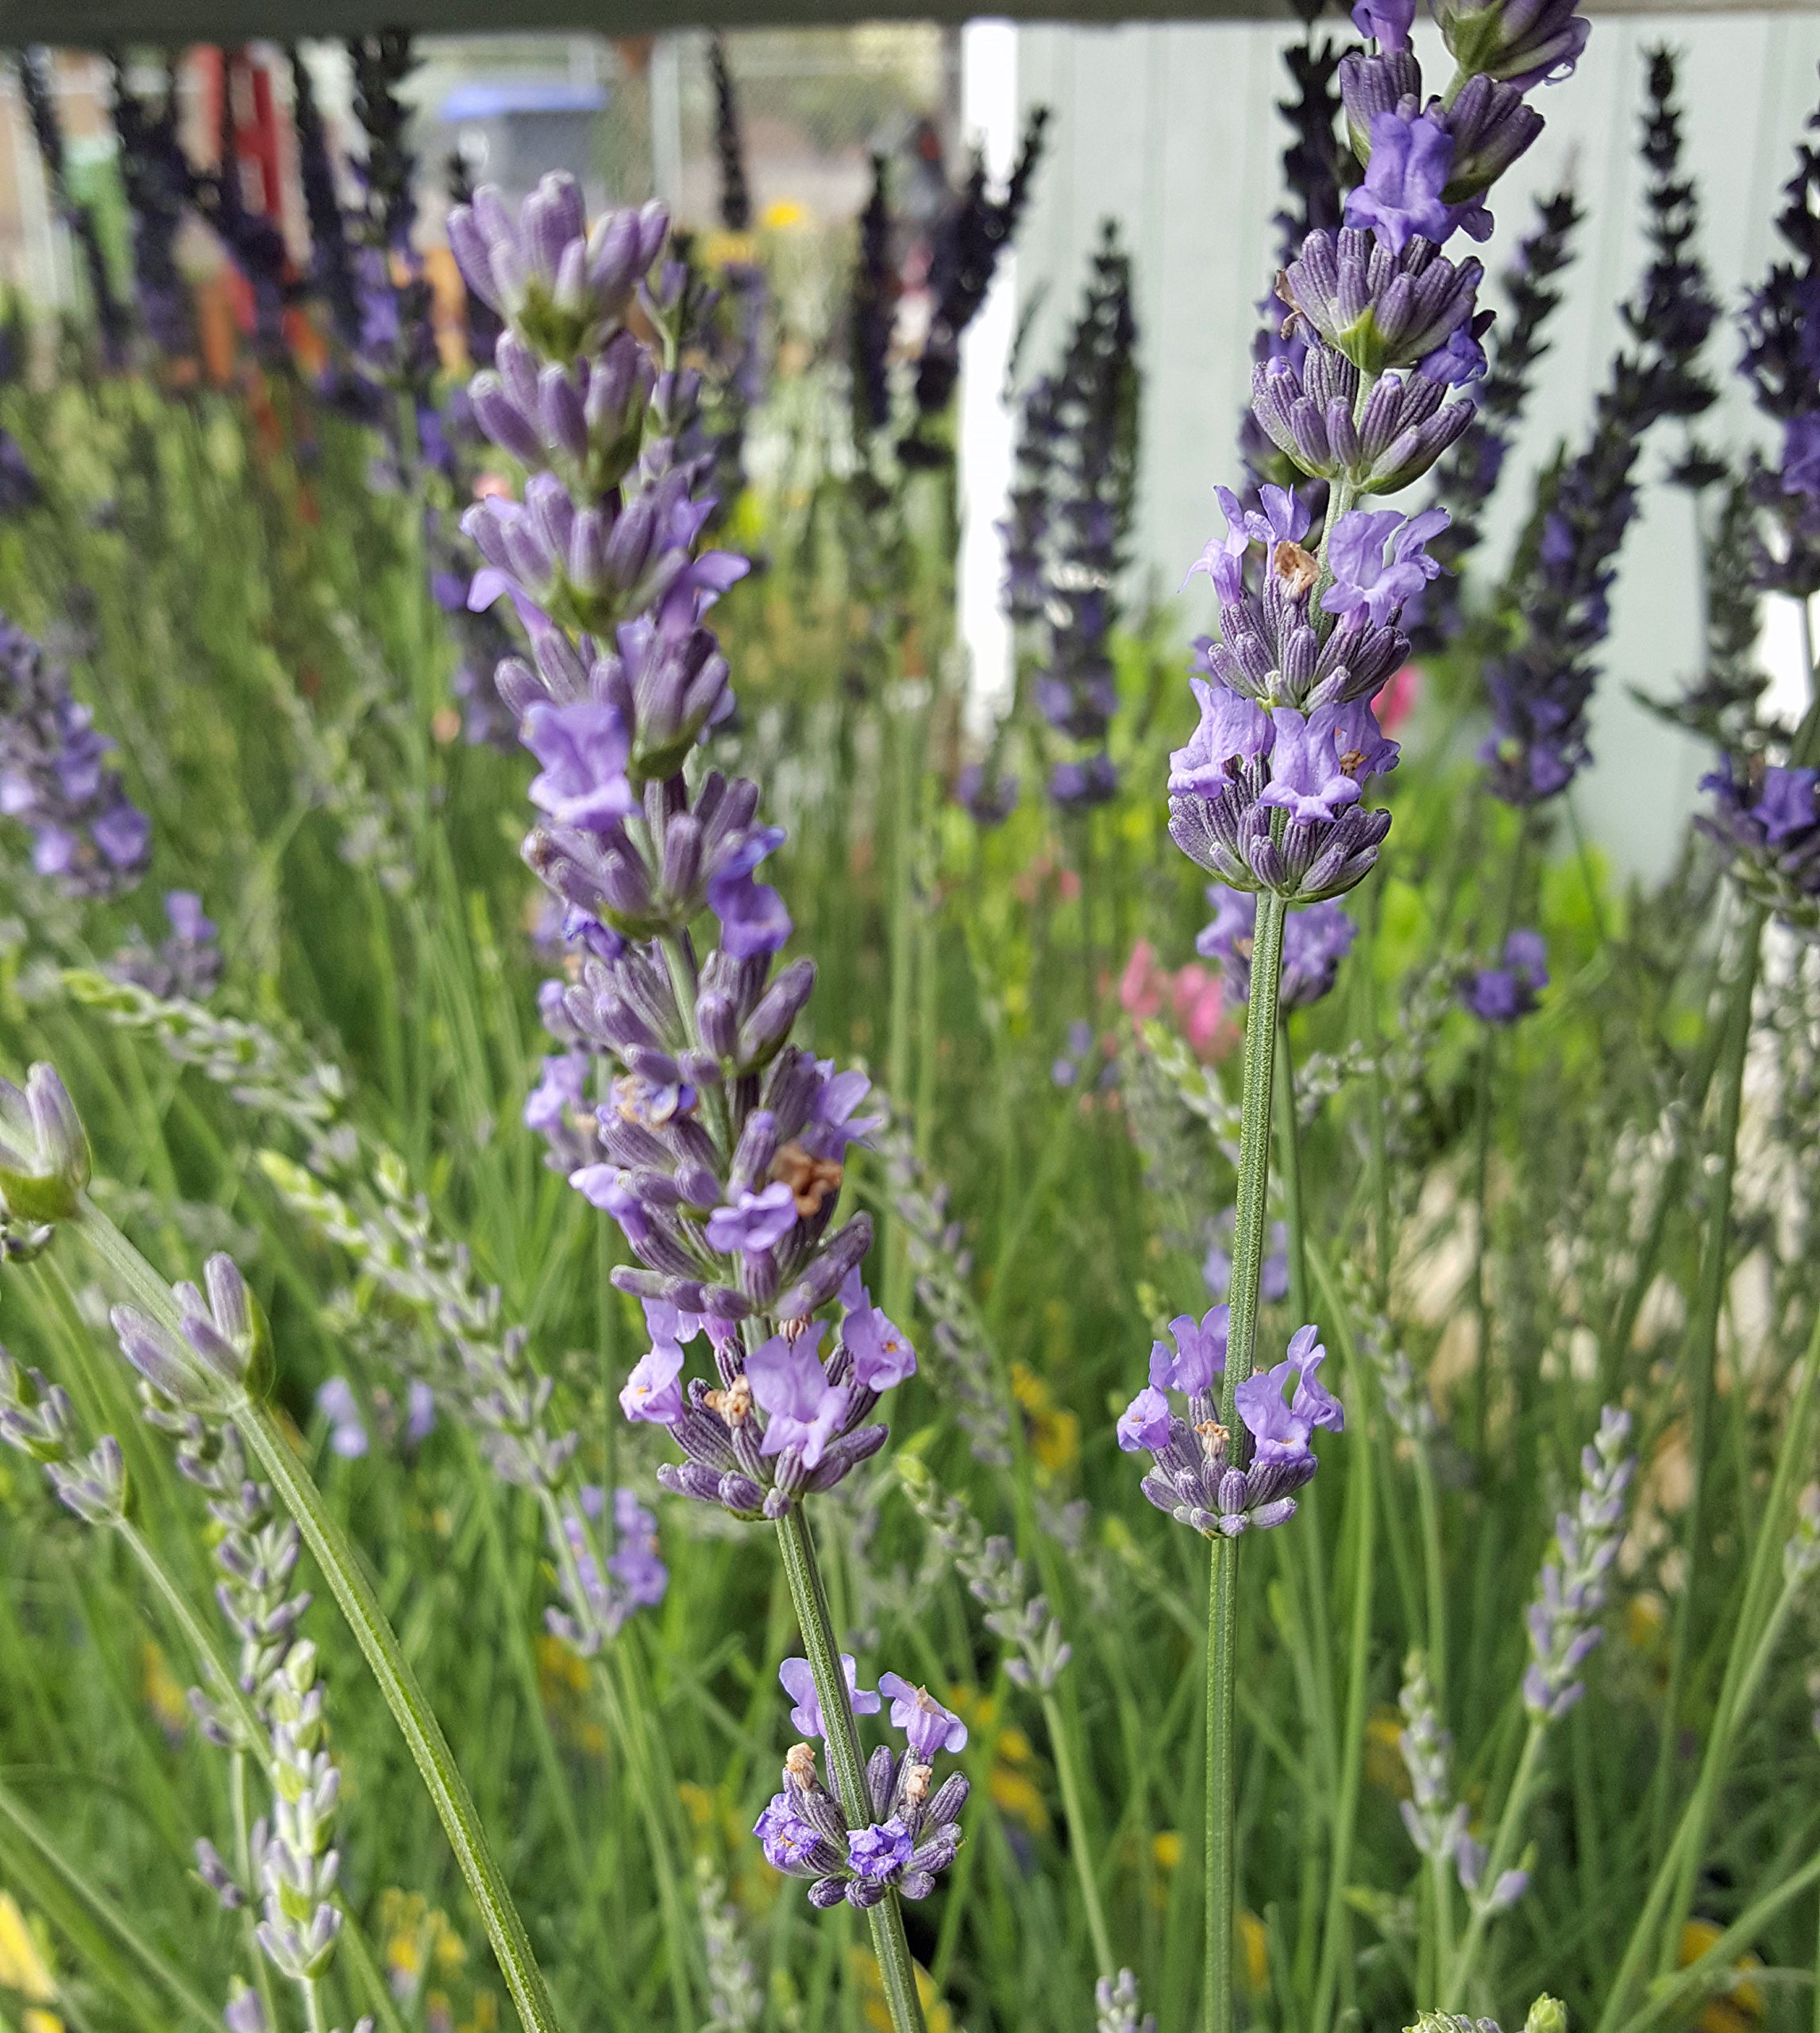 Findlavender - Lavender Plant Phenomenal - 4'' Size Pots - Zones 5 - 10 - Bee Friendly - Attract Butterfly - Evergreen Plant - 18 Live Plants by Findlavender